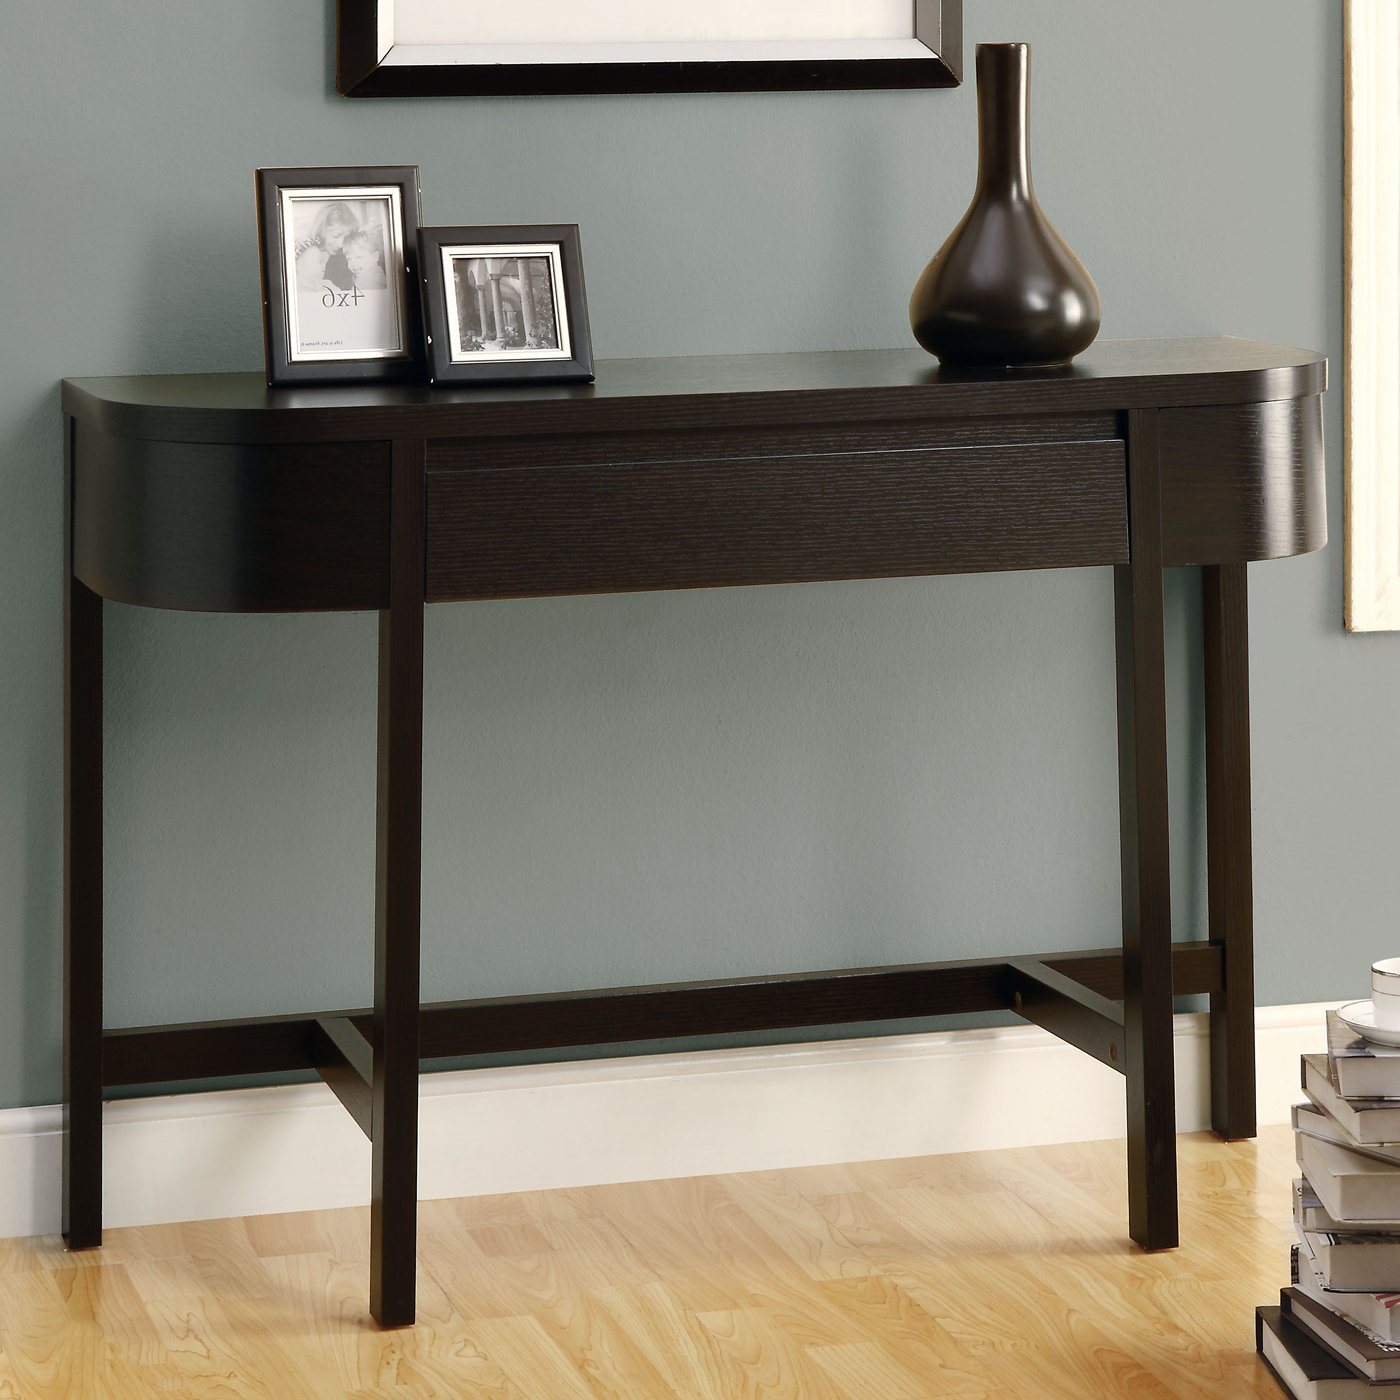 slim console tables that will the sophistication your living table round shape and dark finishing plus frame classic vase wooden laminate floor white half moon accent great